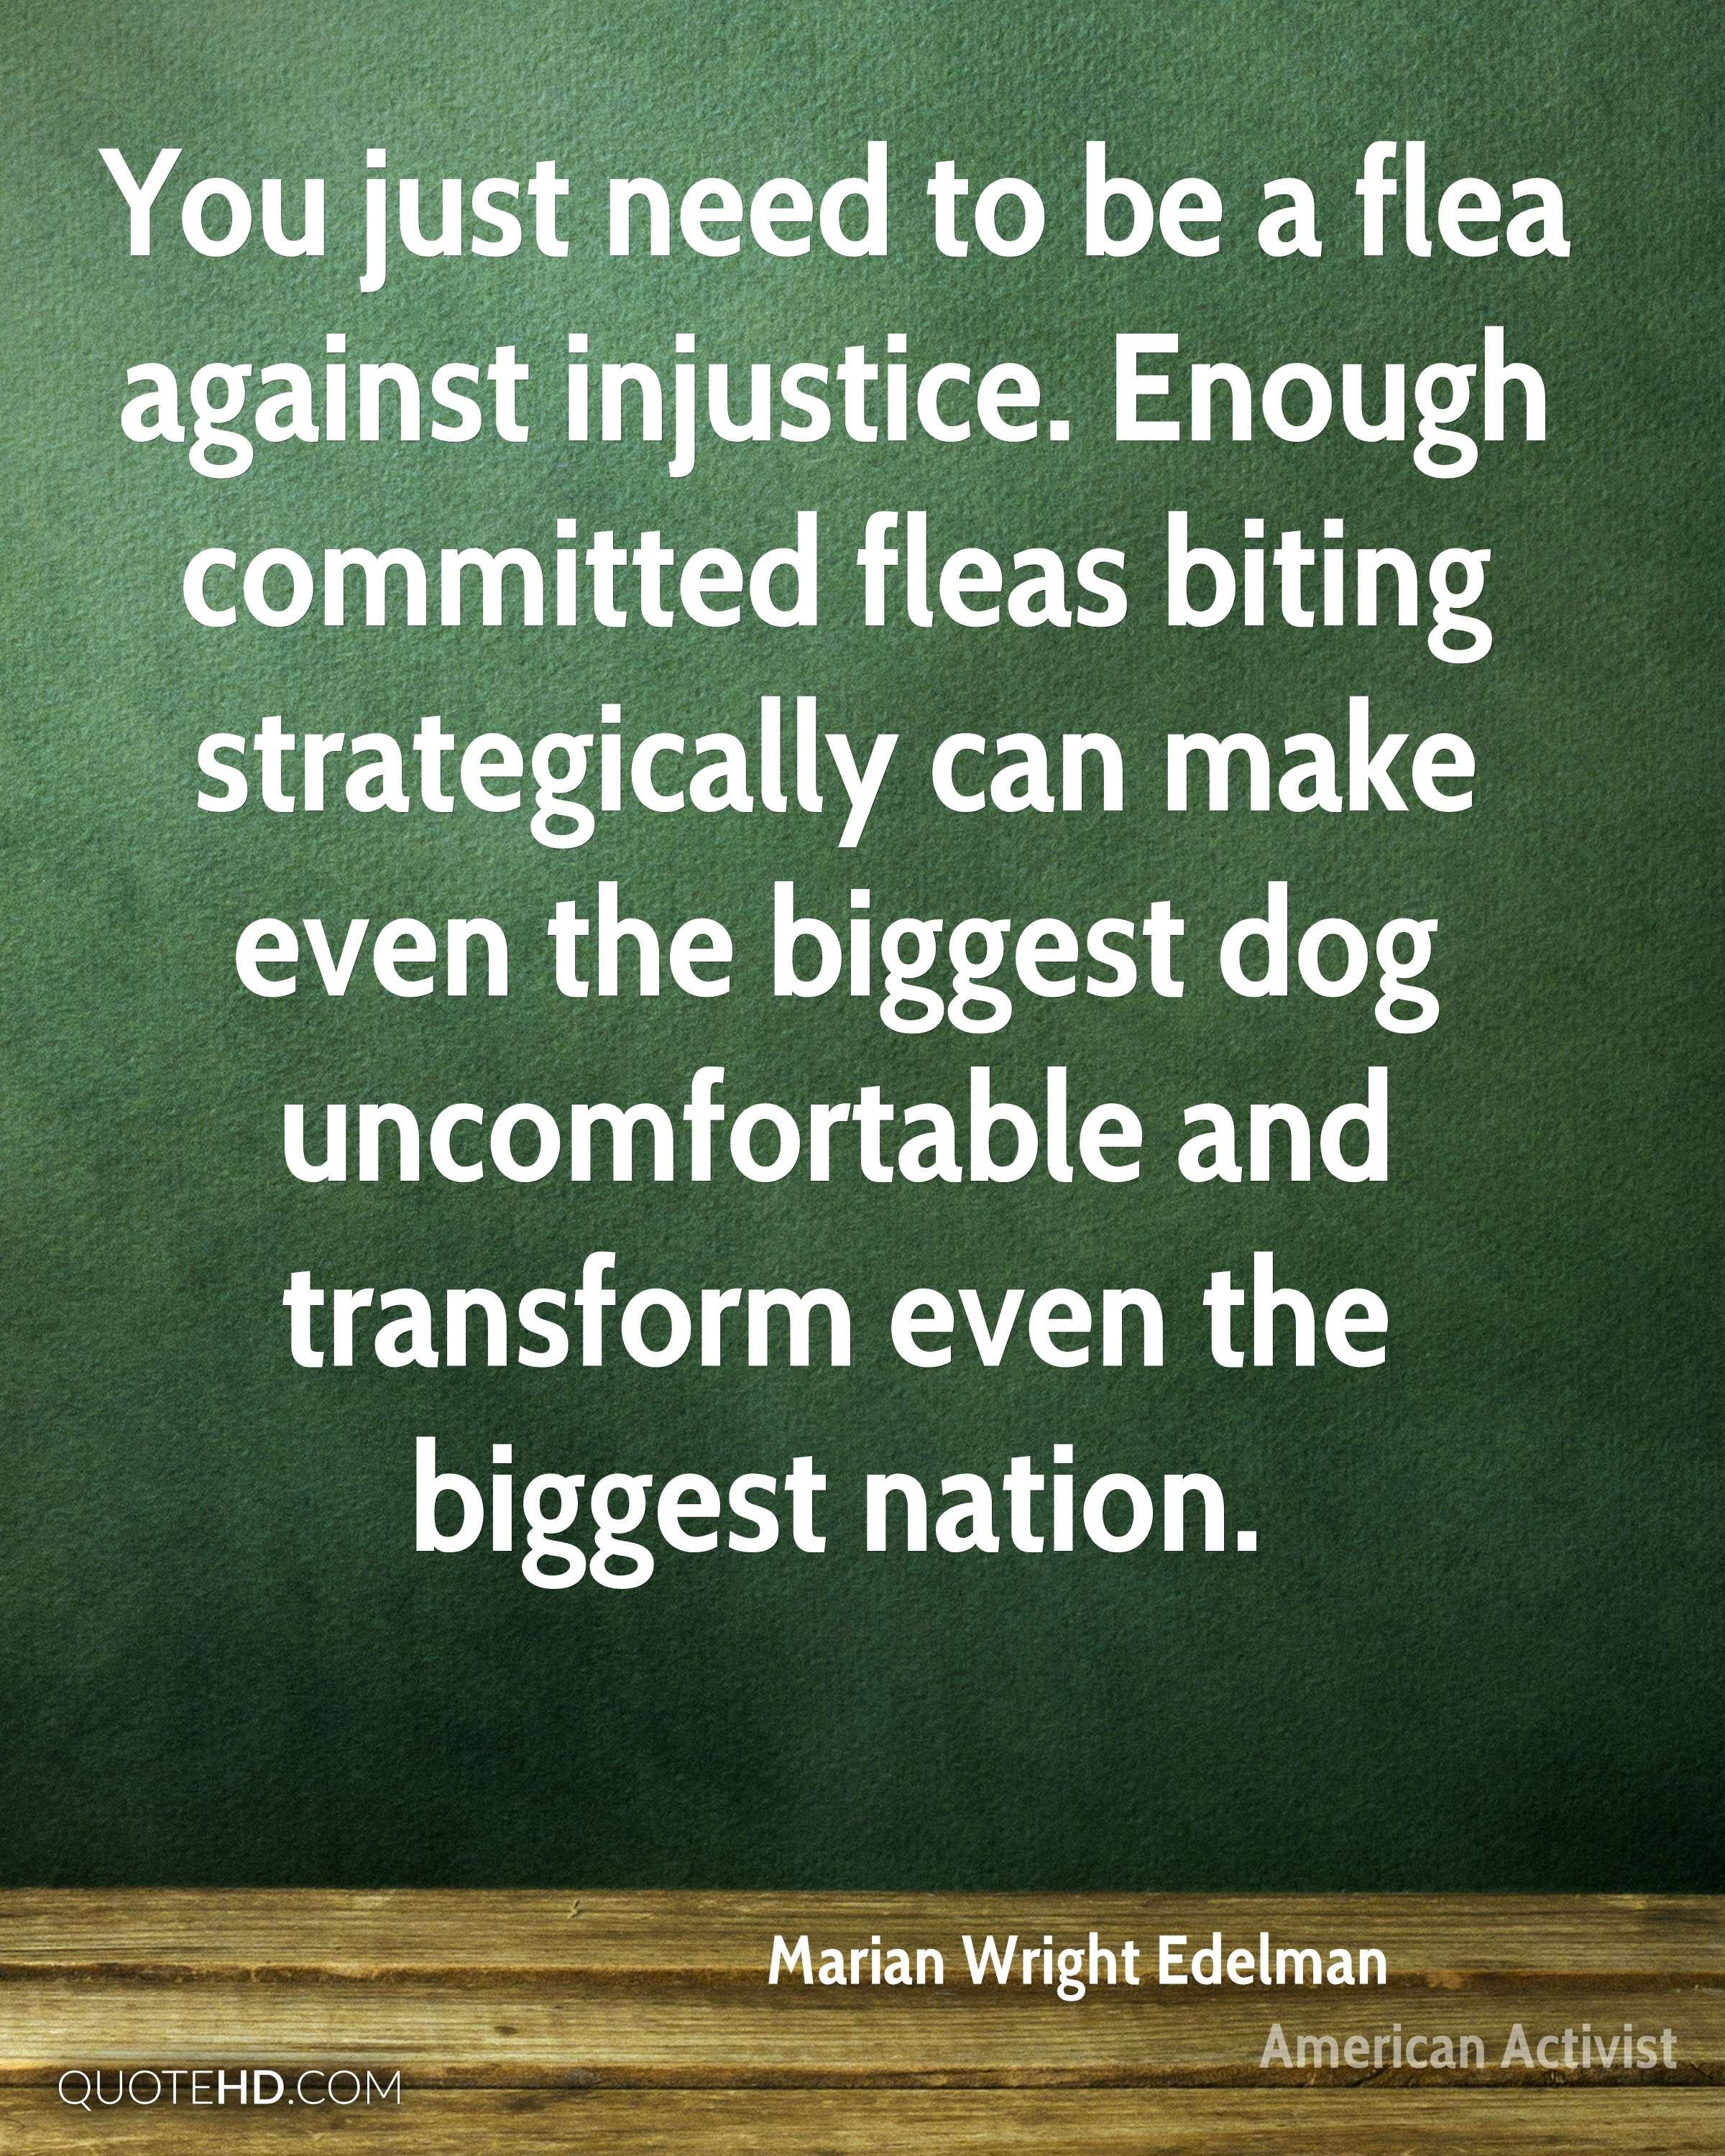 You just need to be a flea against injustice. Enough committed fleas biting strategically can make even the biggest dog uncomfortable and transform even the biggest nation.